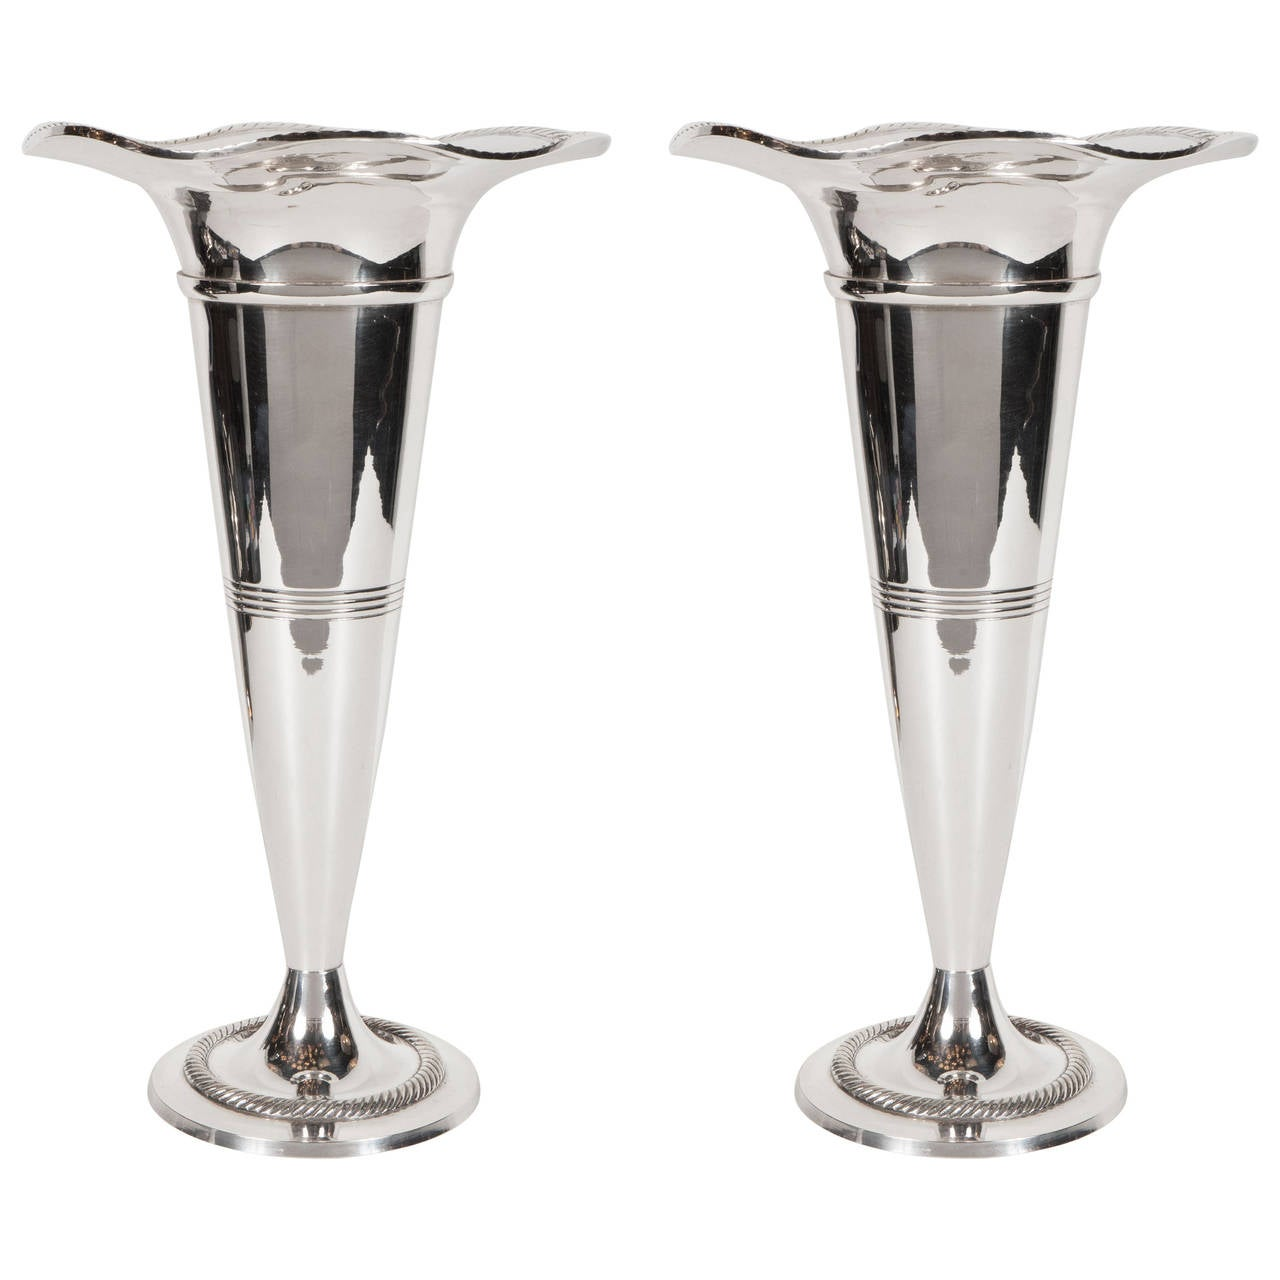 Silver Vases Elegant Pair Of Art Deco Silver Plate Trumpet Vases For Sale At